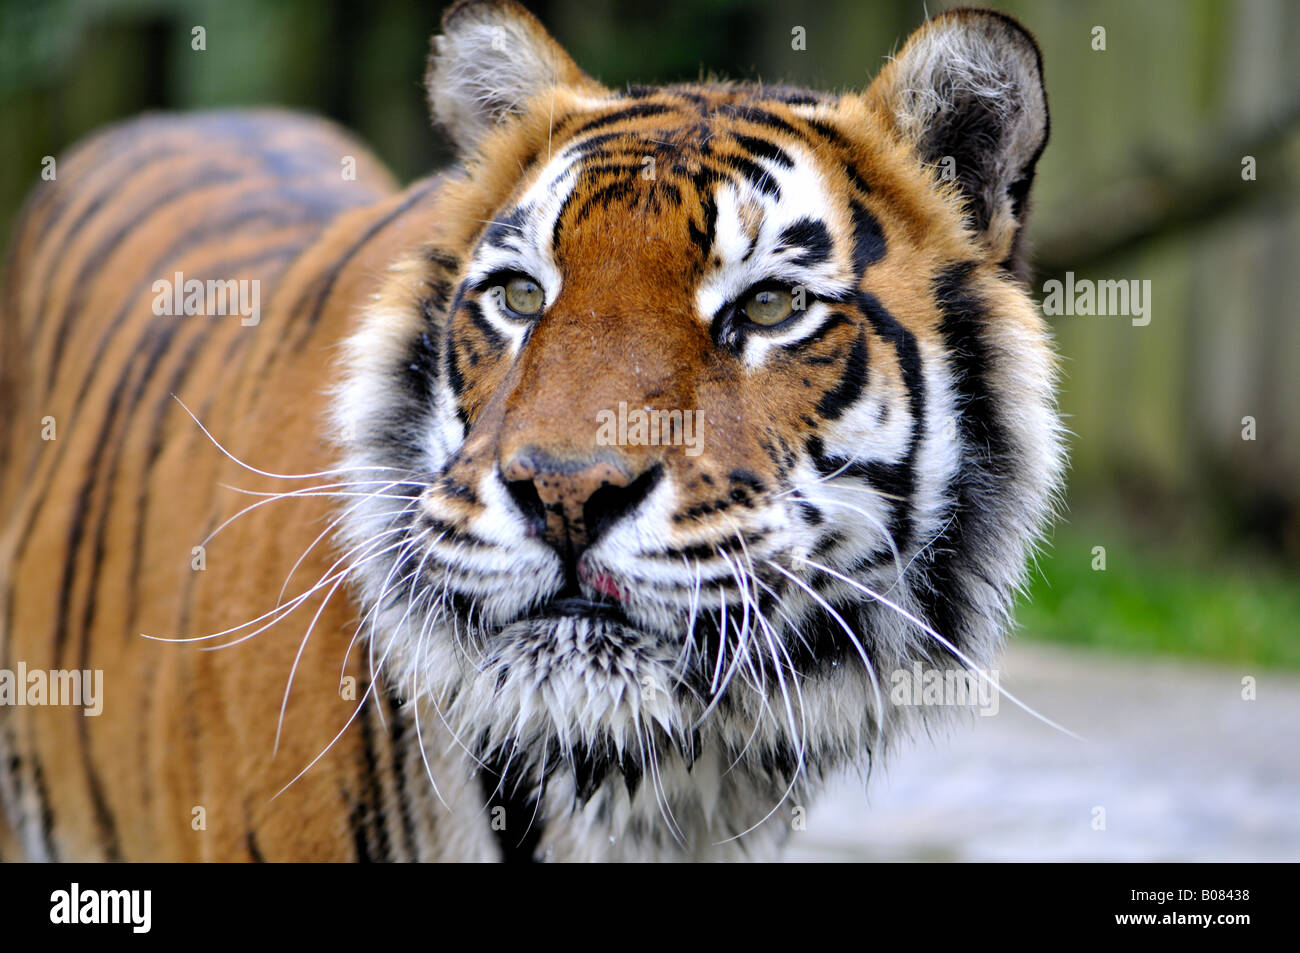 Tiger sticking his tounge out - Stock Image